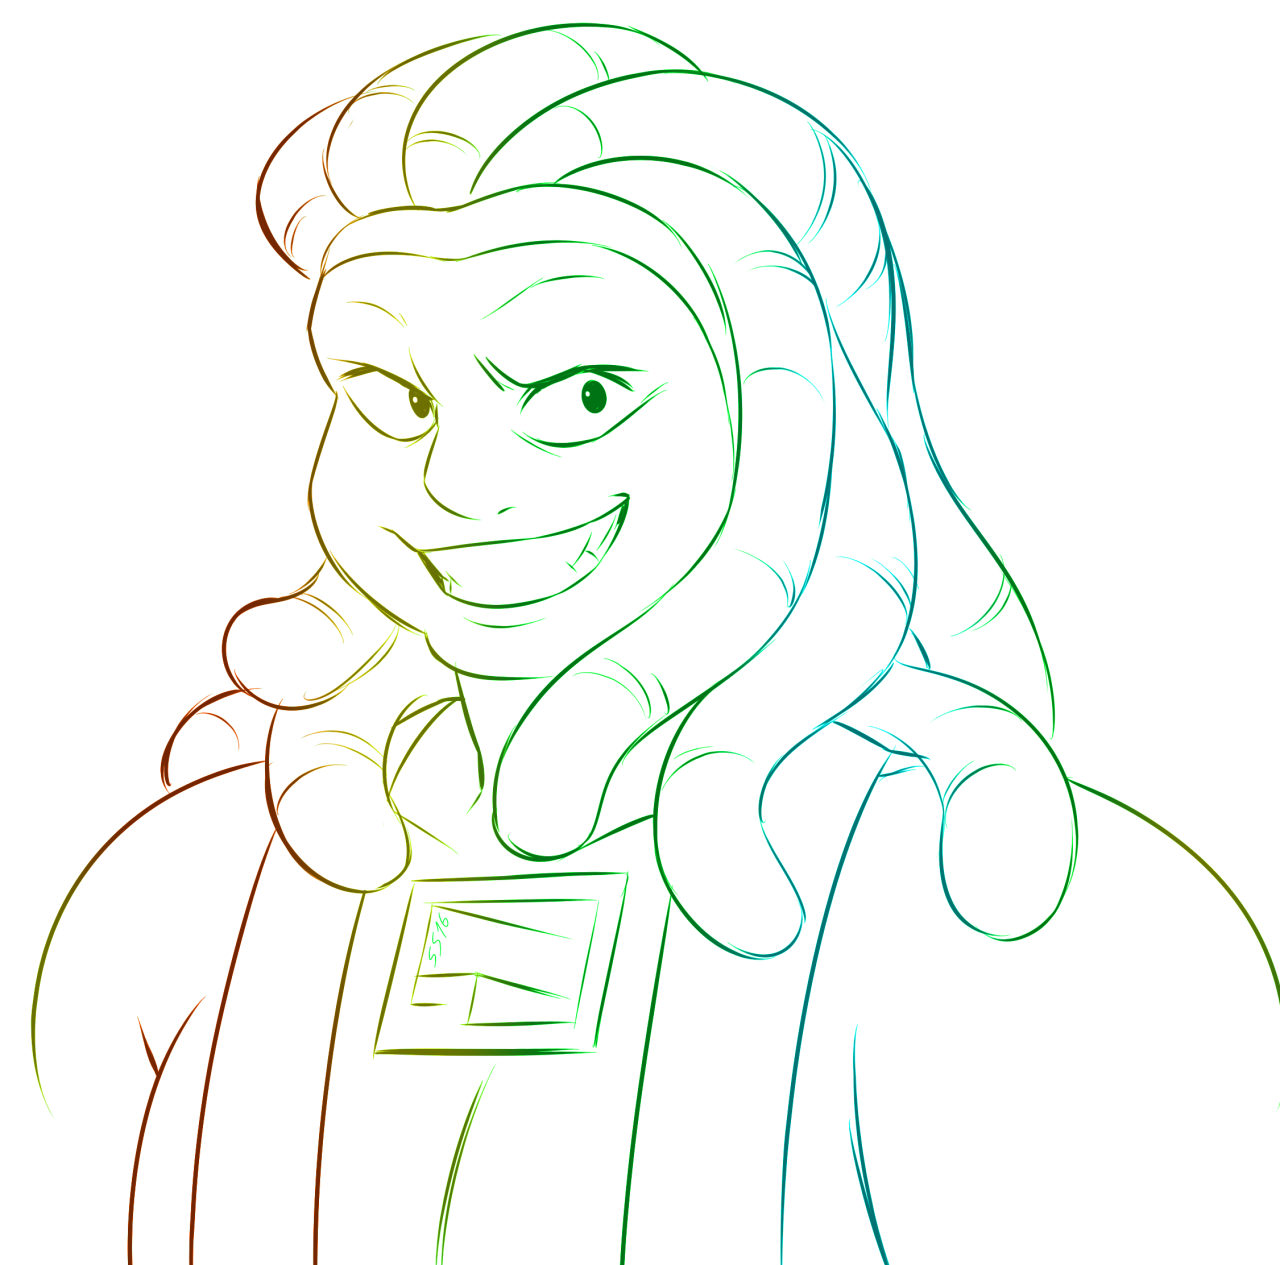 I really wanted to draw Bismuth but didn't want to put any effort into it… oh well… it's also my favorite element from the periodic table